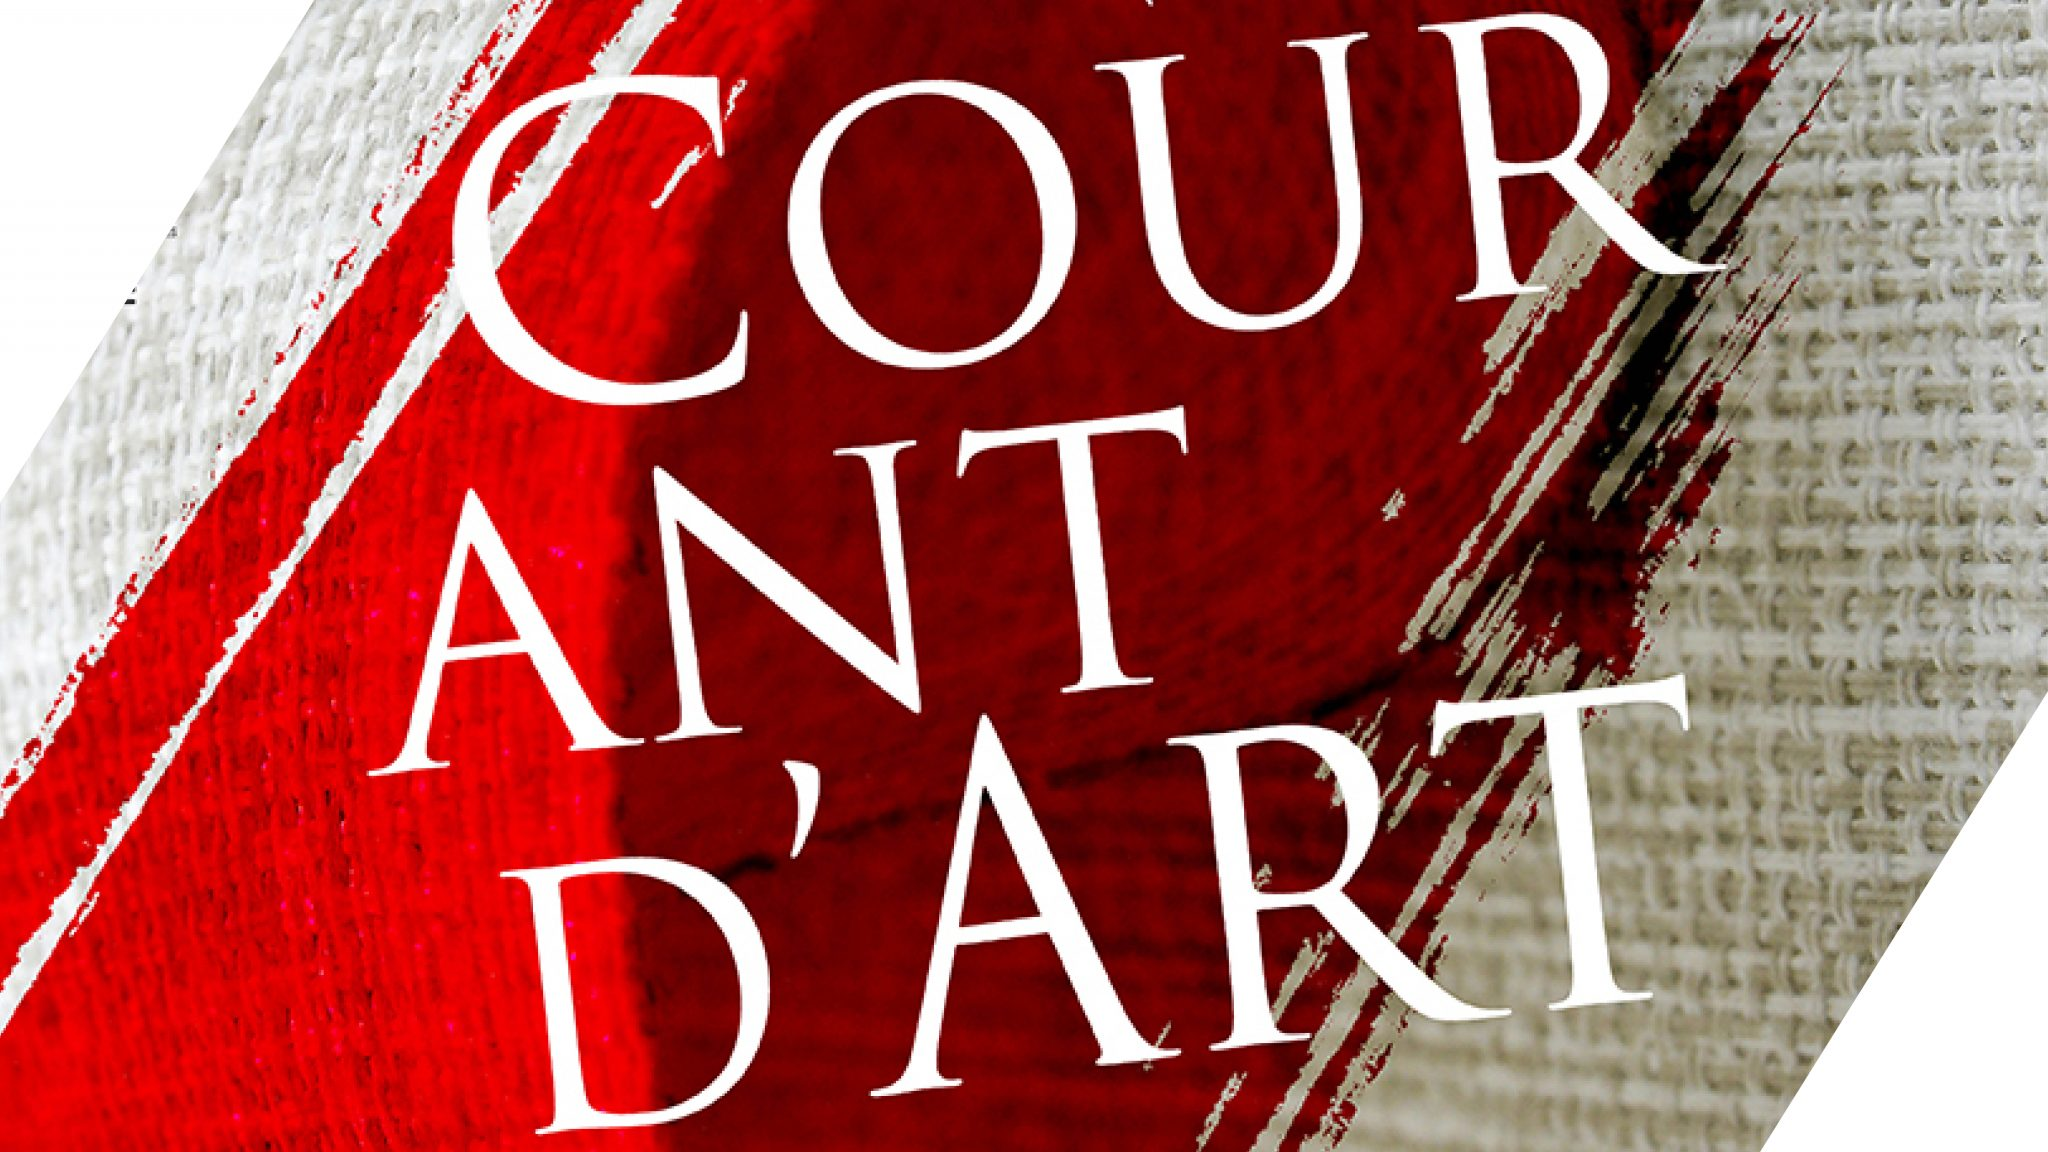 Courant d'art - Anne Pourny